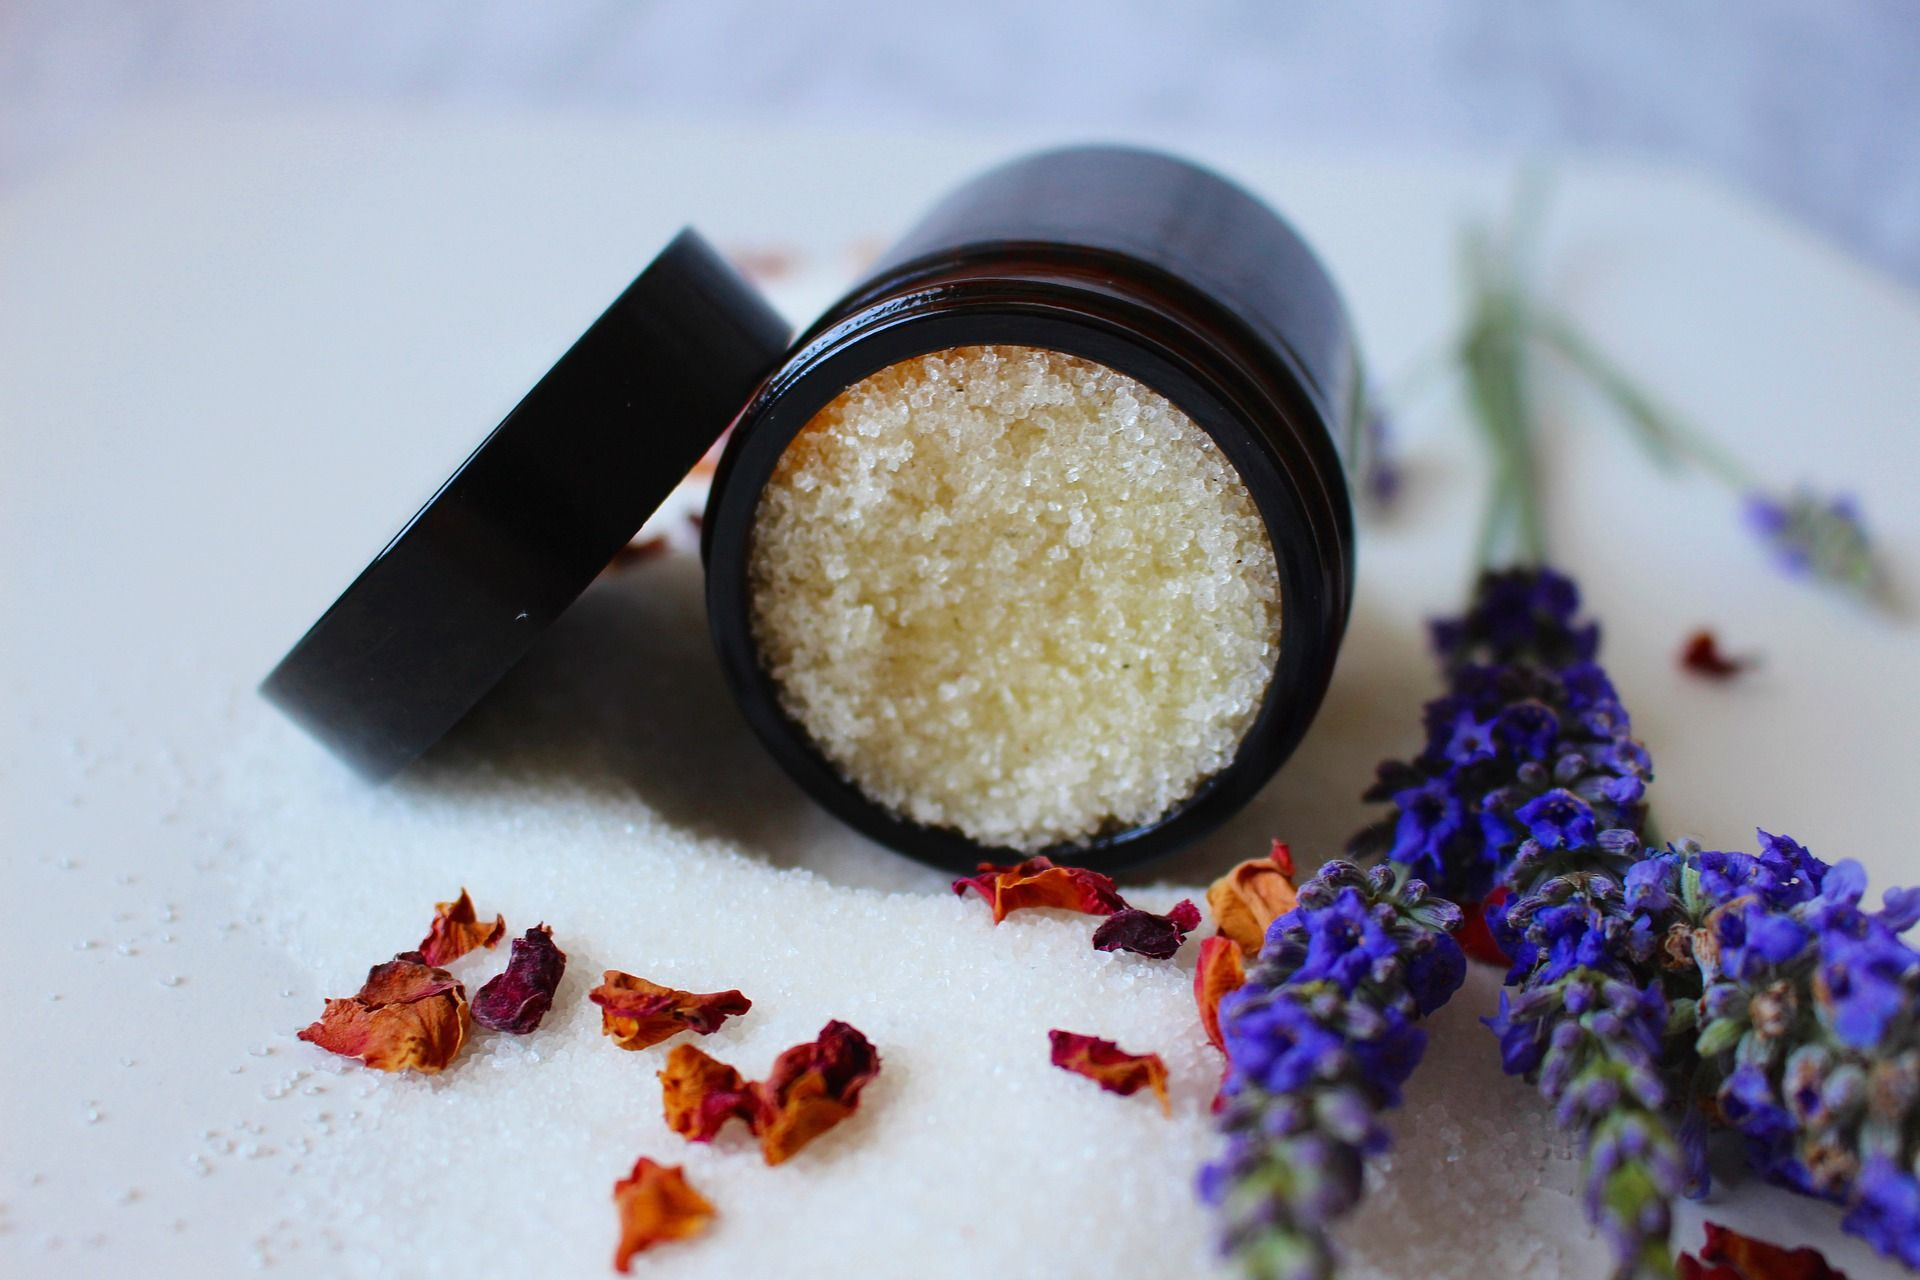 How to Naturally Exfoliate Your Skin